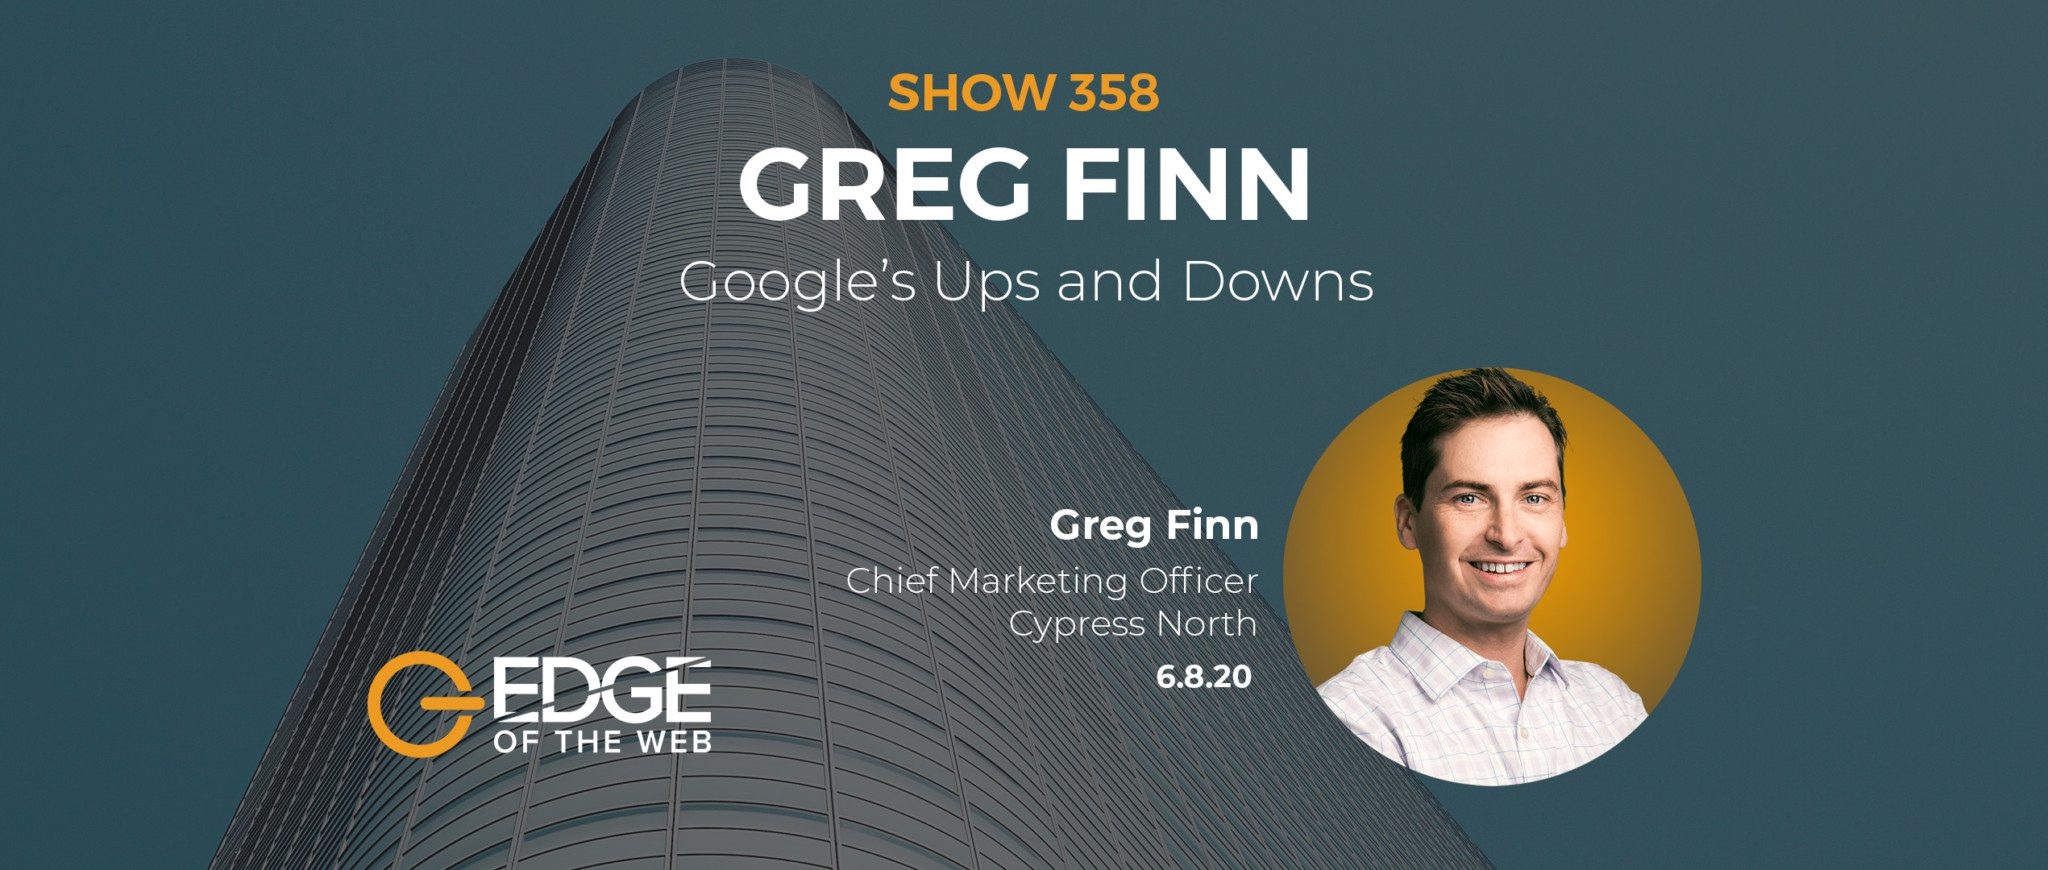 Greg Finn EDGE of the Web Featured Image